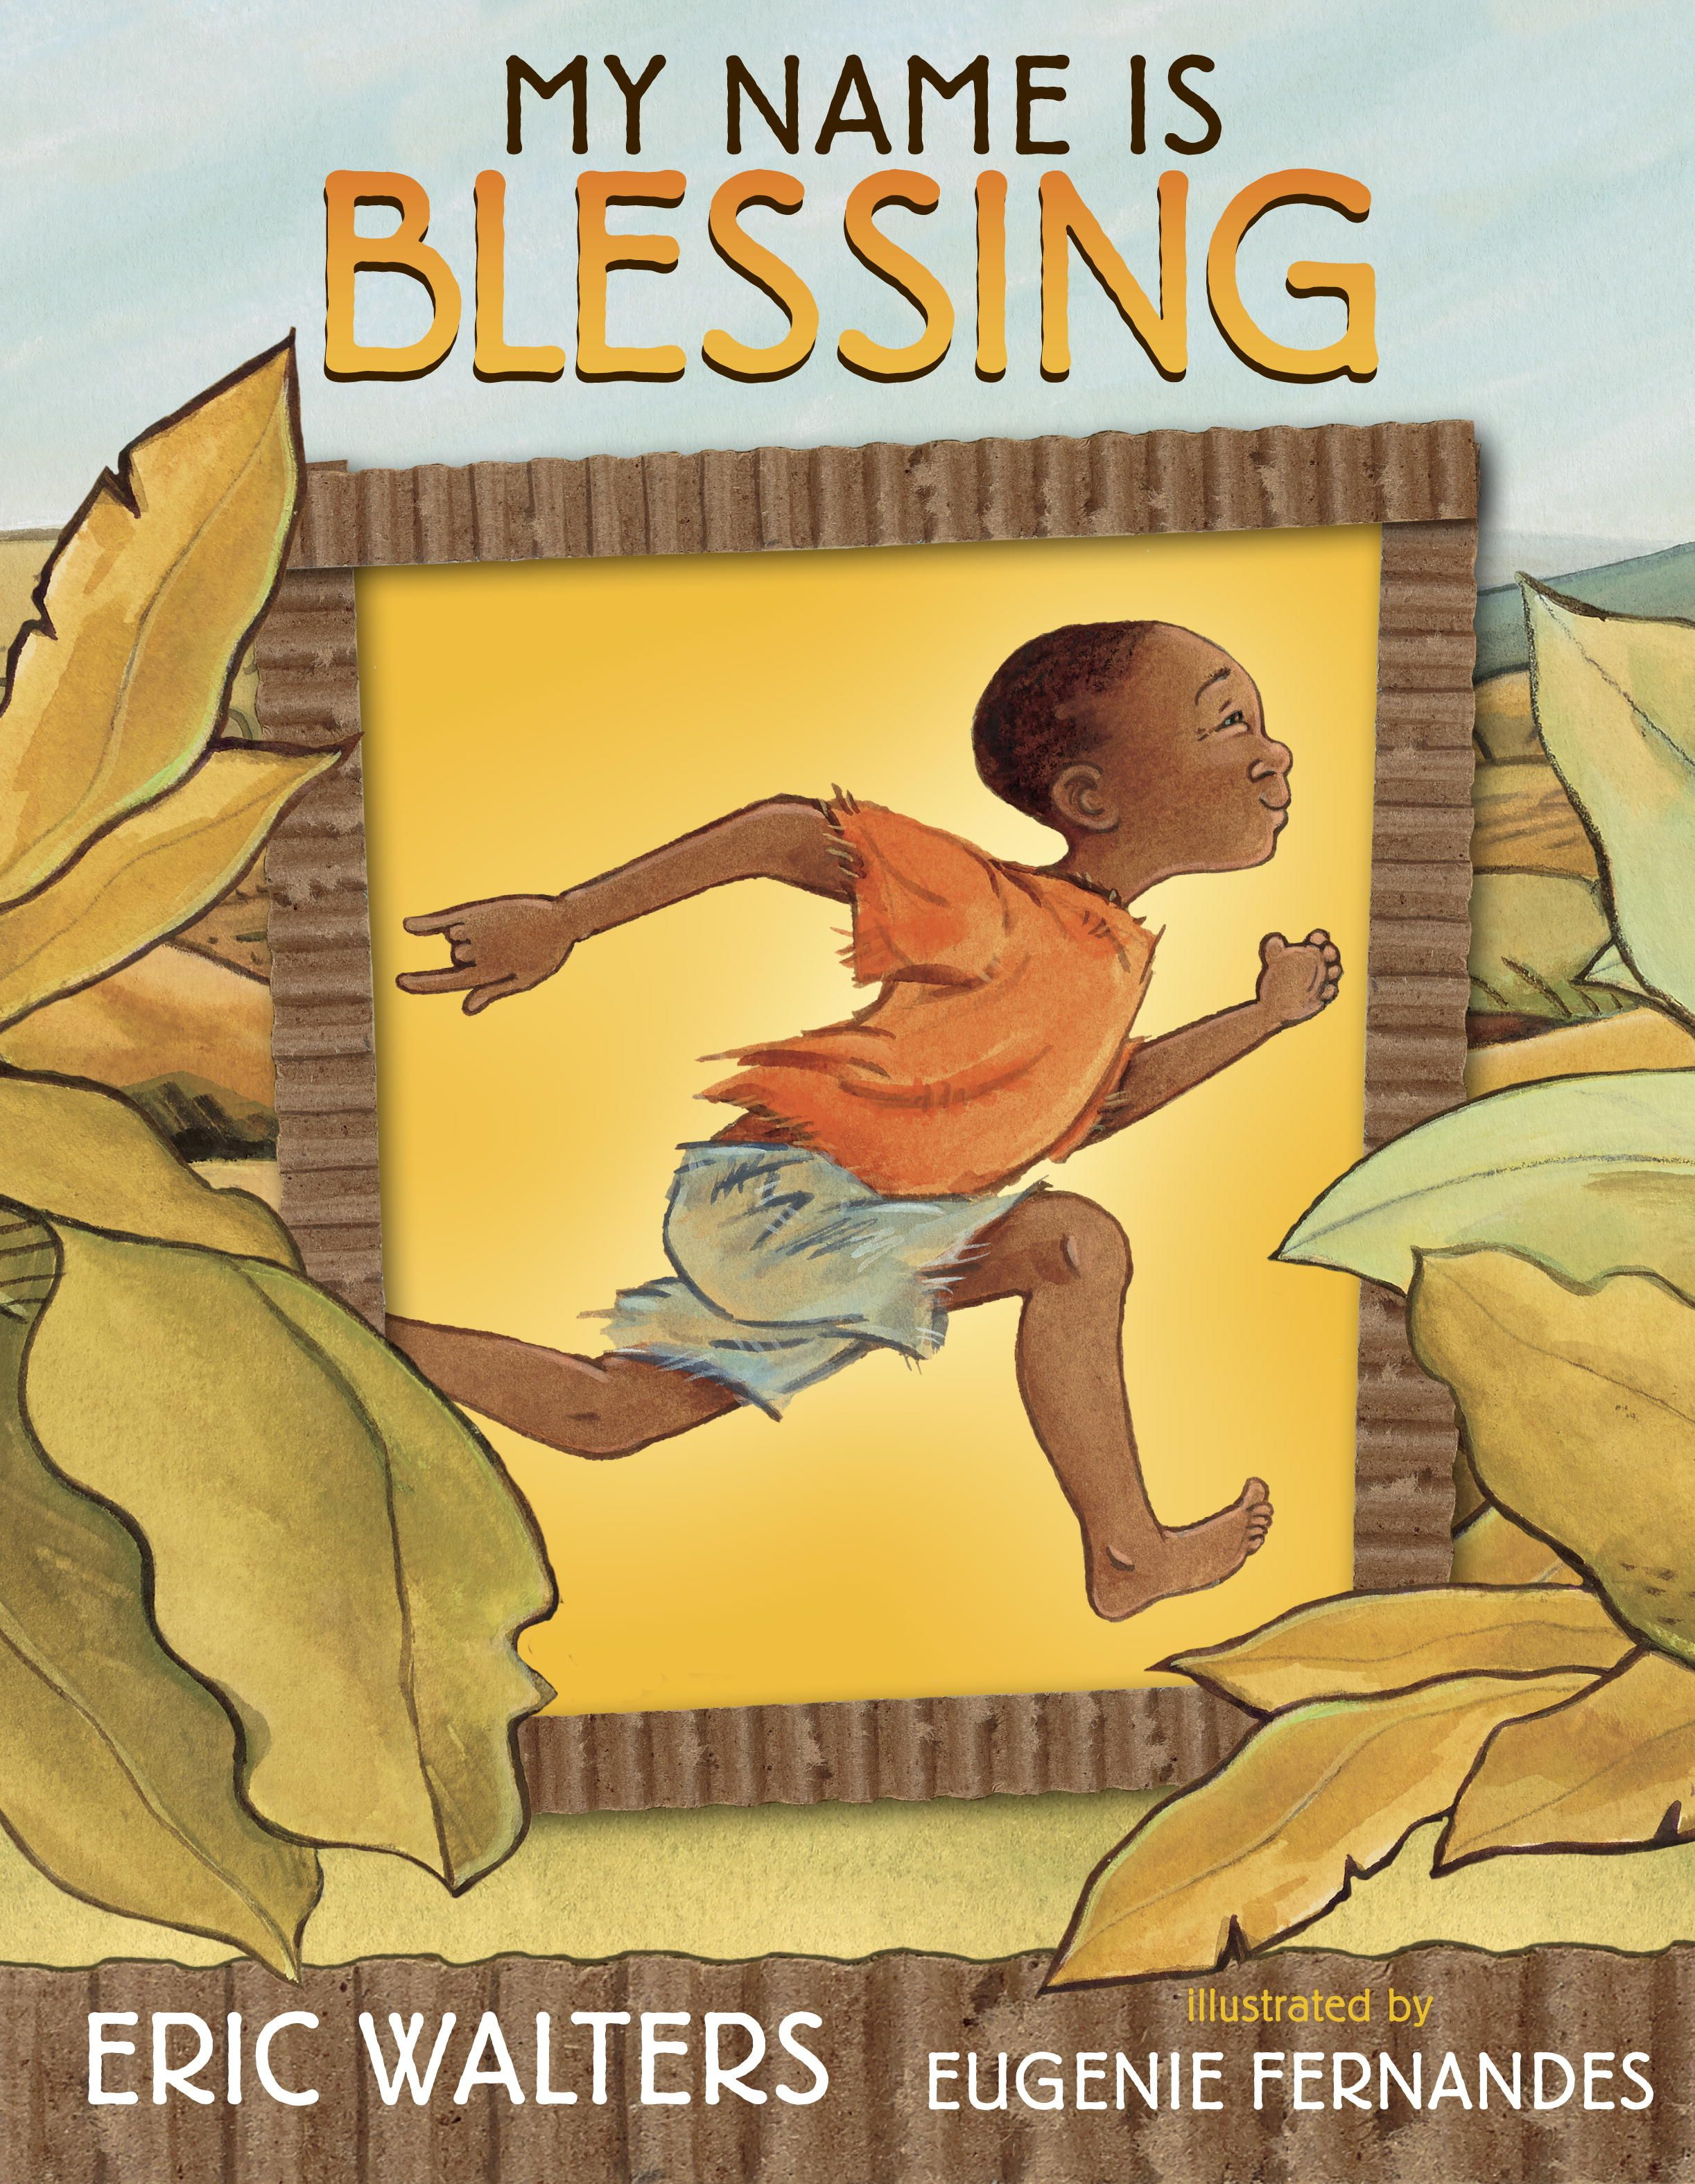 My Name Is Blessing by Eric Walters on BookDragon